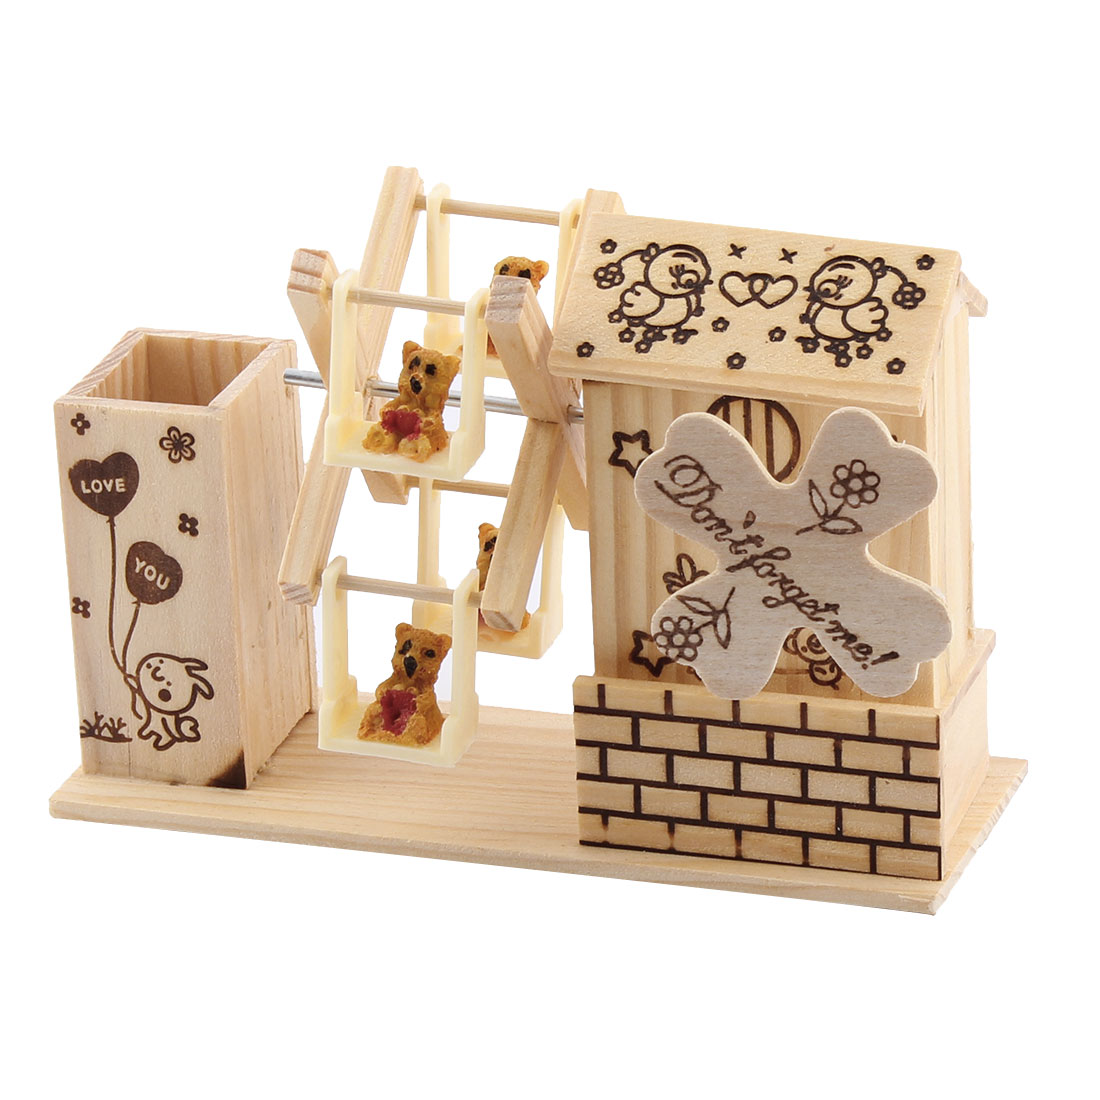 Wood Carton Print Four Bears Decor Windmill Shaped Dual-use Pencil Holder Music Box